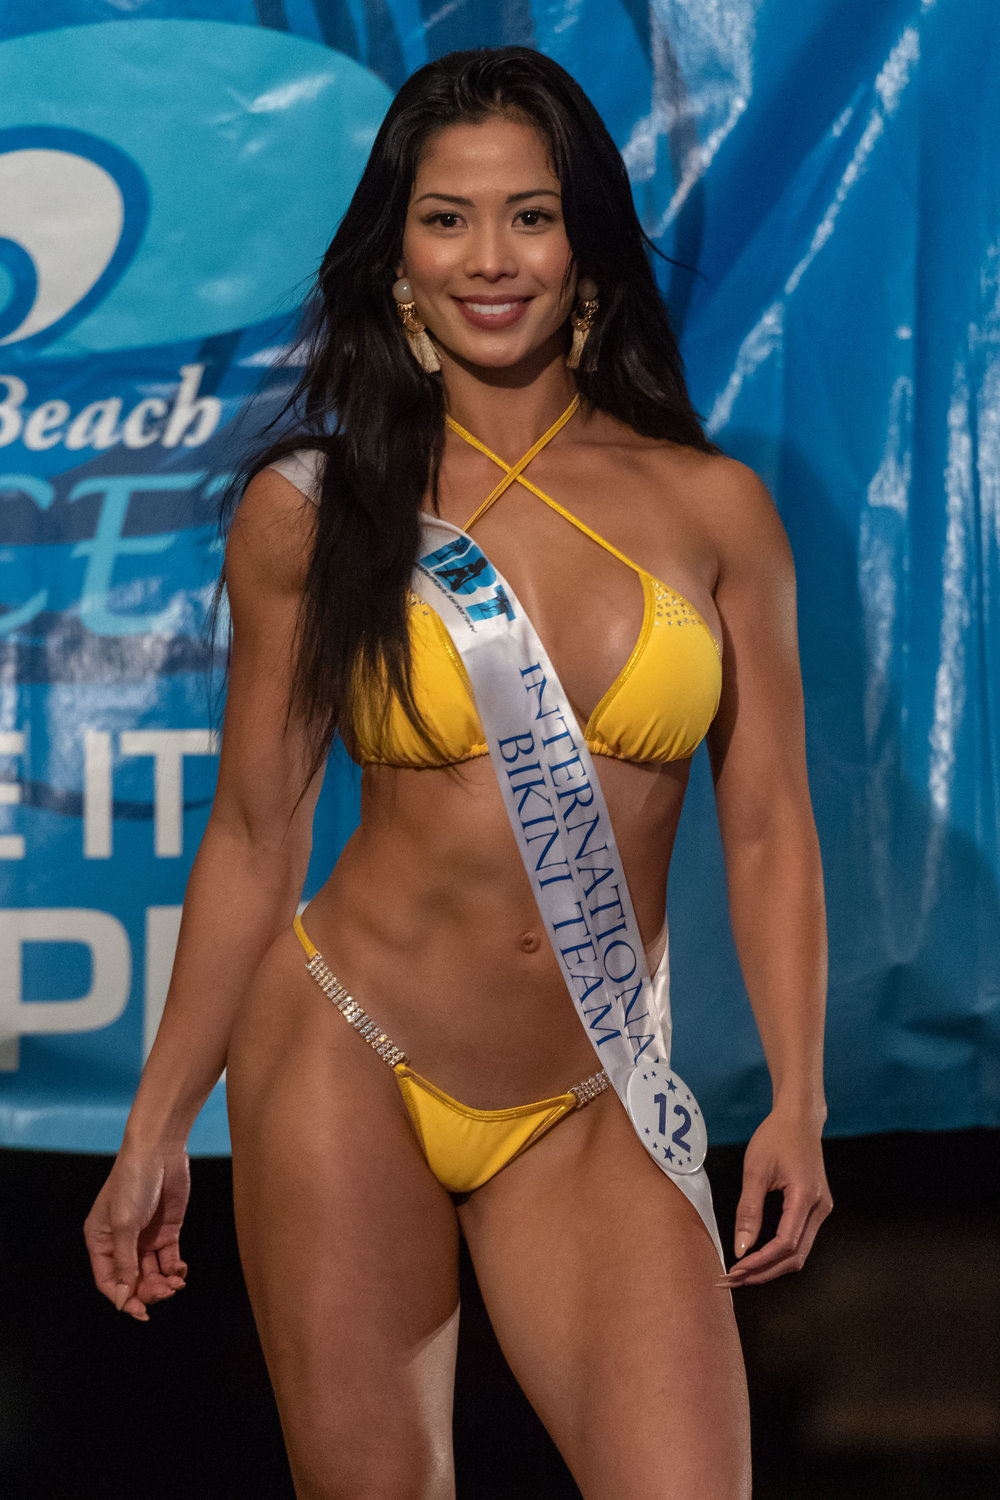 Preliminary Round 9 of the 2018 Coastal Edge Miss ECSC Pageant held at Coastal Edge Presented by Pacifico Beer DoctorStonersVodka ALT 105.3 Chesapeake Bay Distillery iHeartRadio Virginia Beach Nightlife International Bikini Team